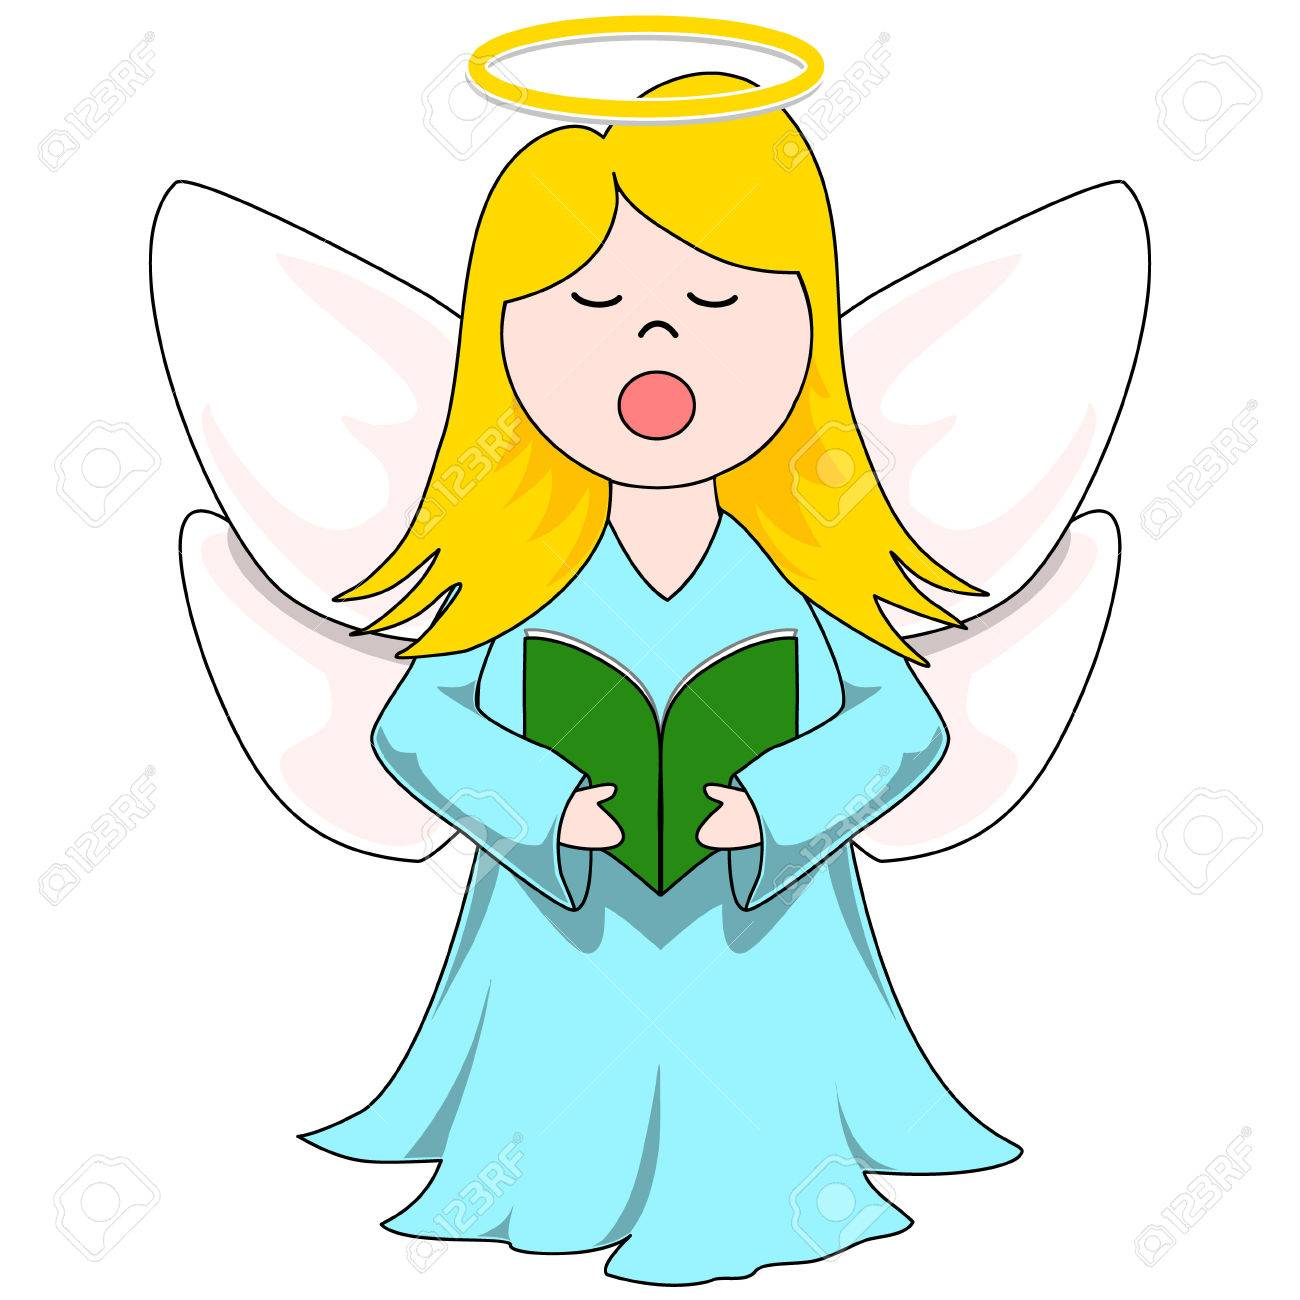 Christmas Caroling Angel With Blue Dress, Green Carol Book And Golden Halo  Stock Vector